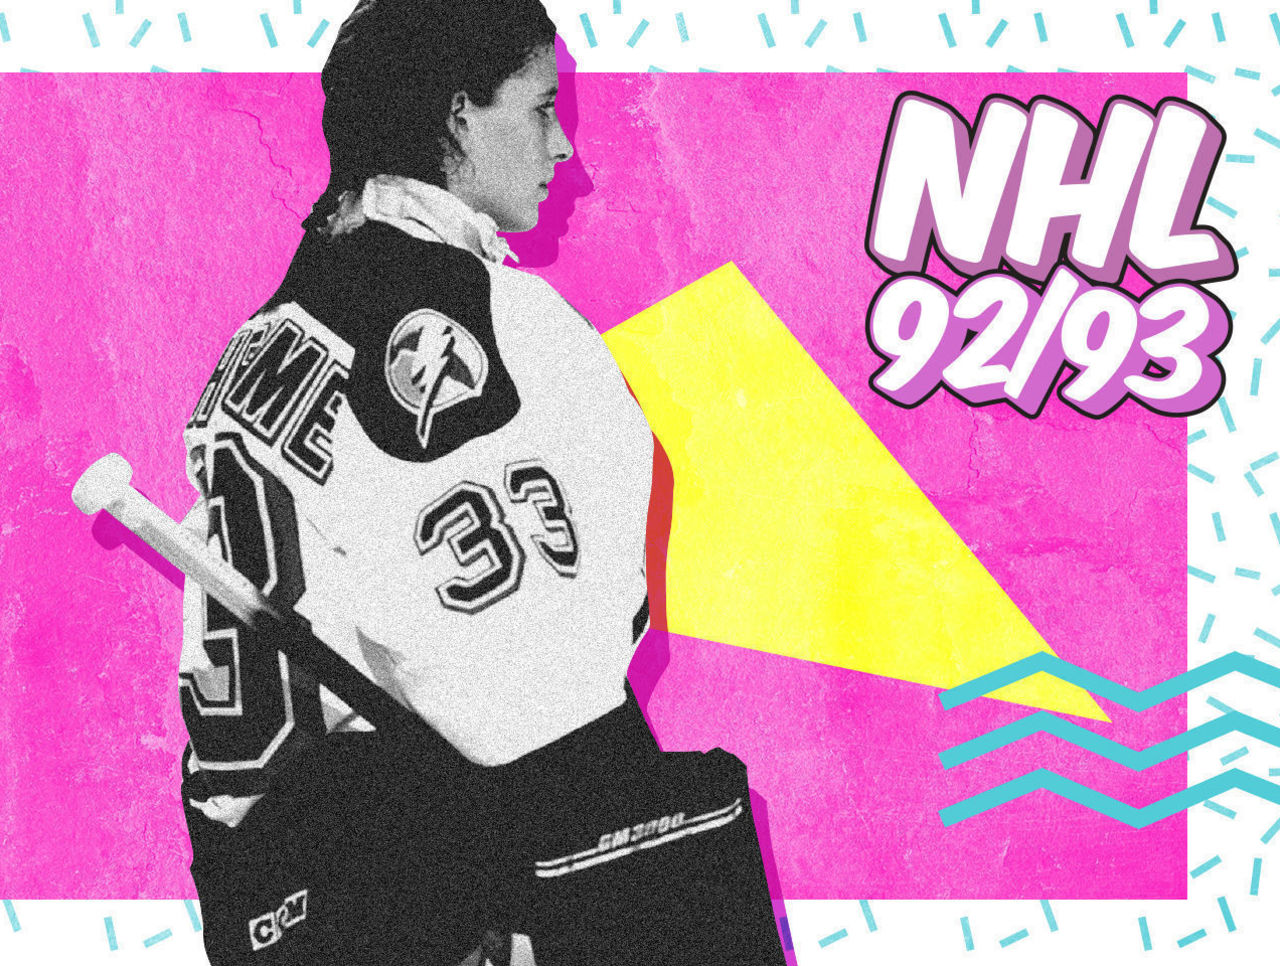 Cropped 90s image rheaume